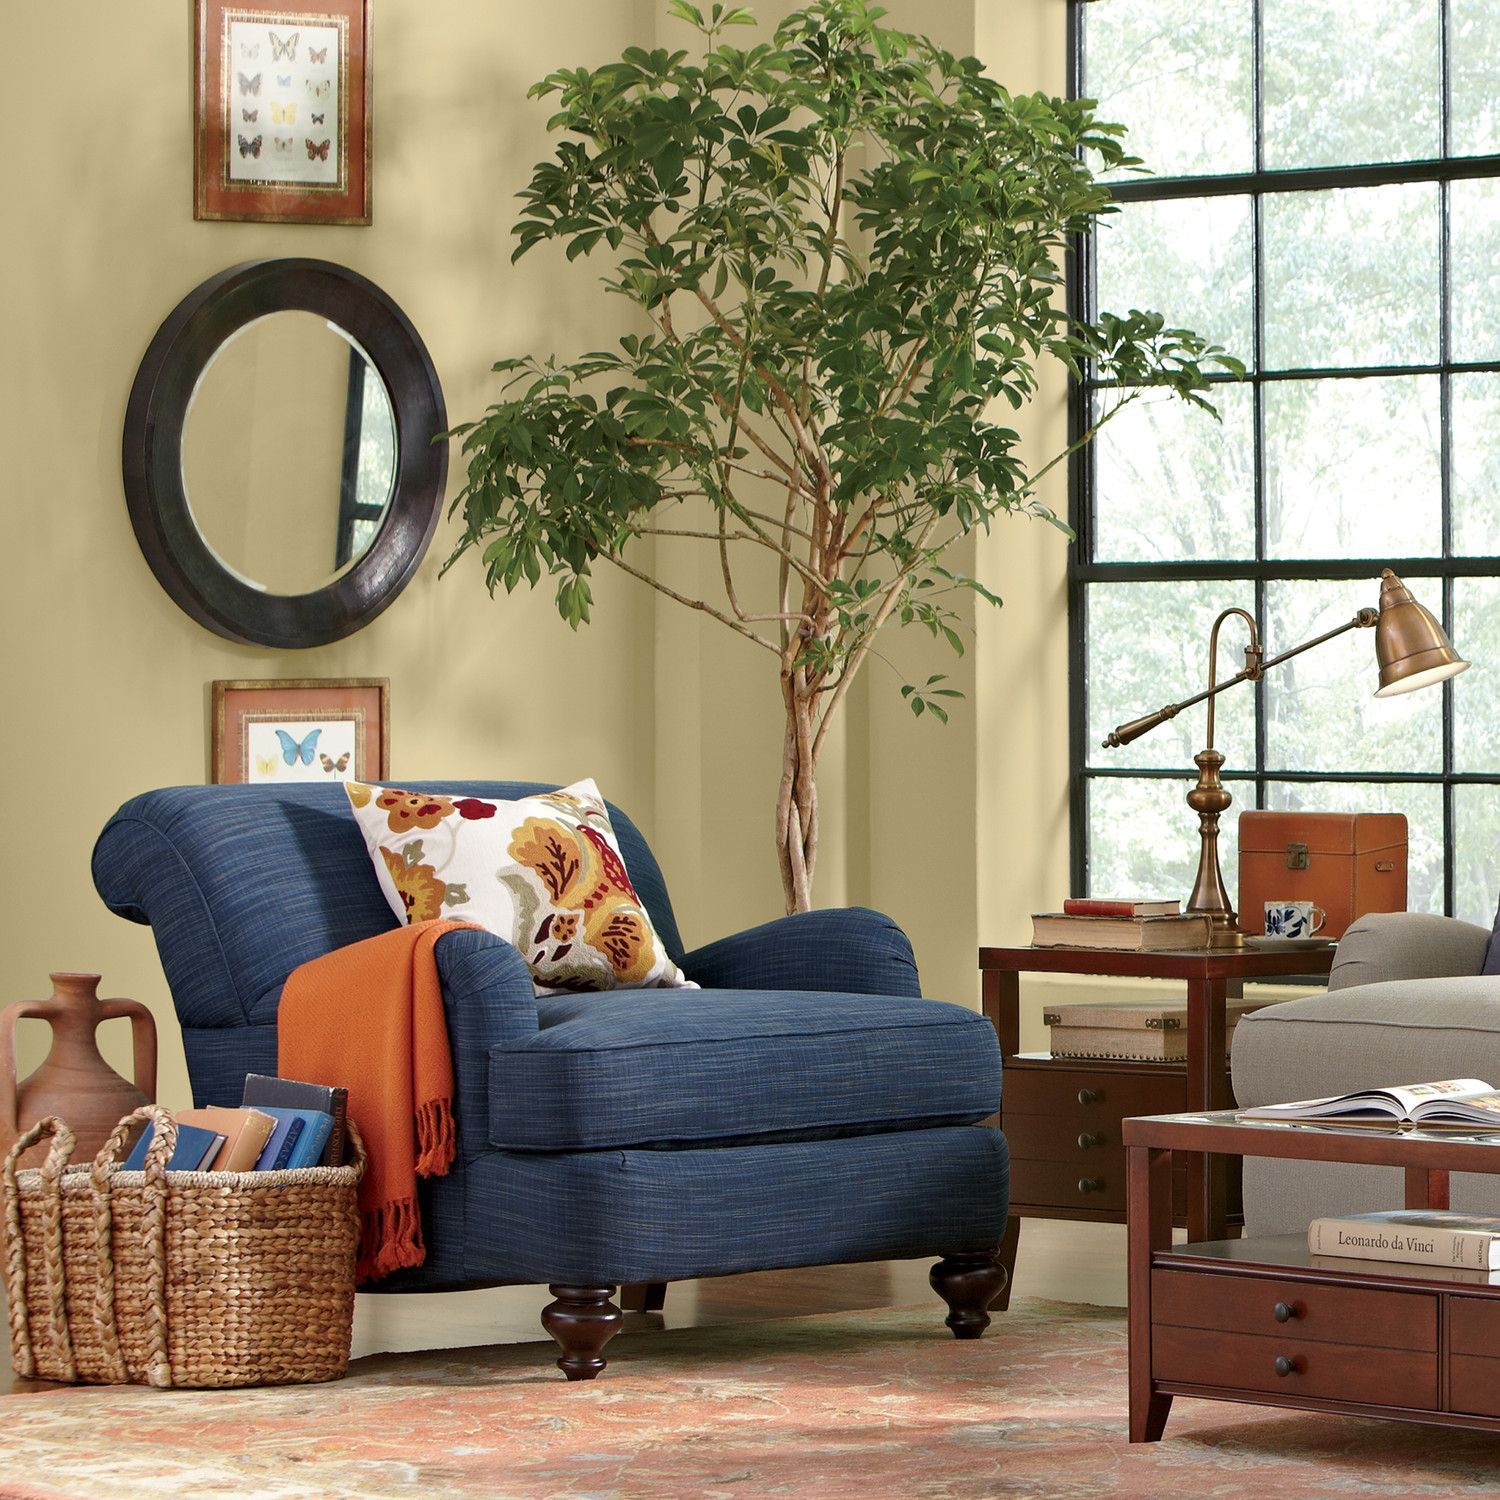 24 Quot Armchair Living Room Decor Home Decor Traditional